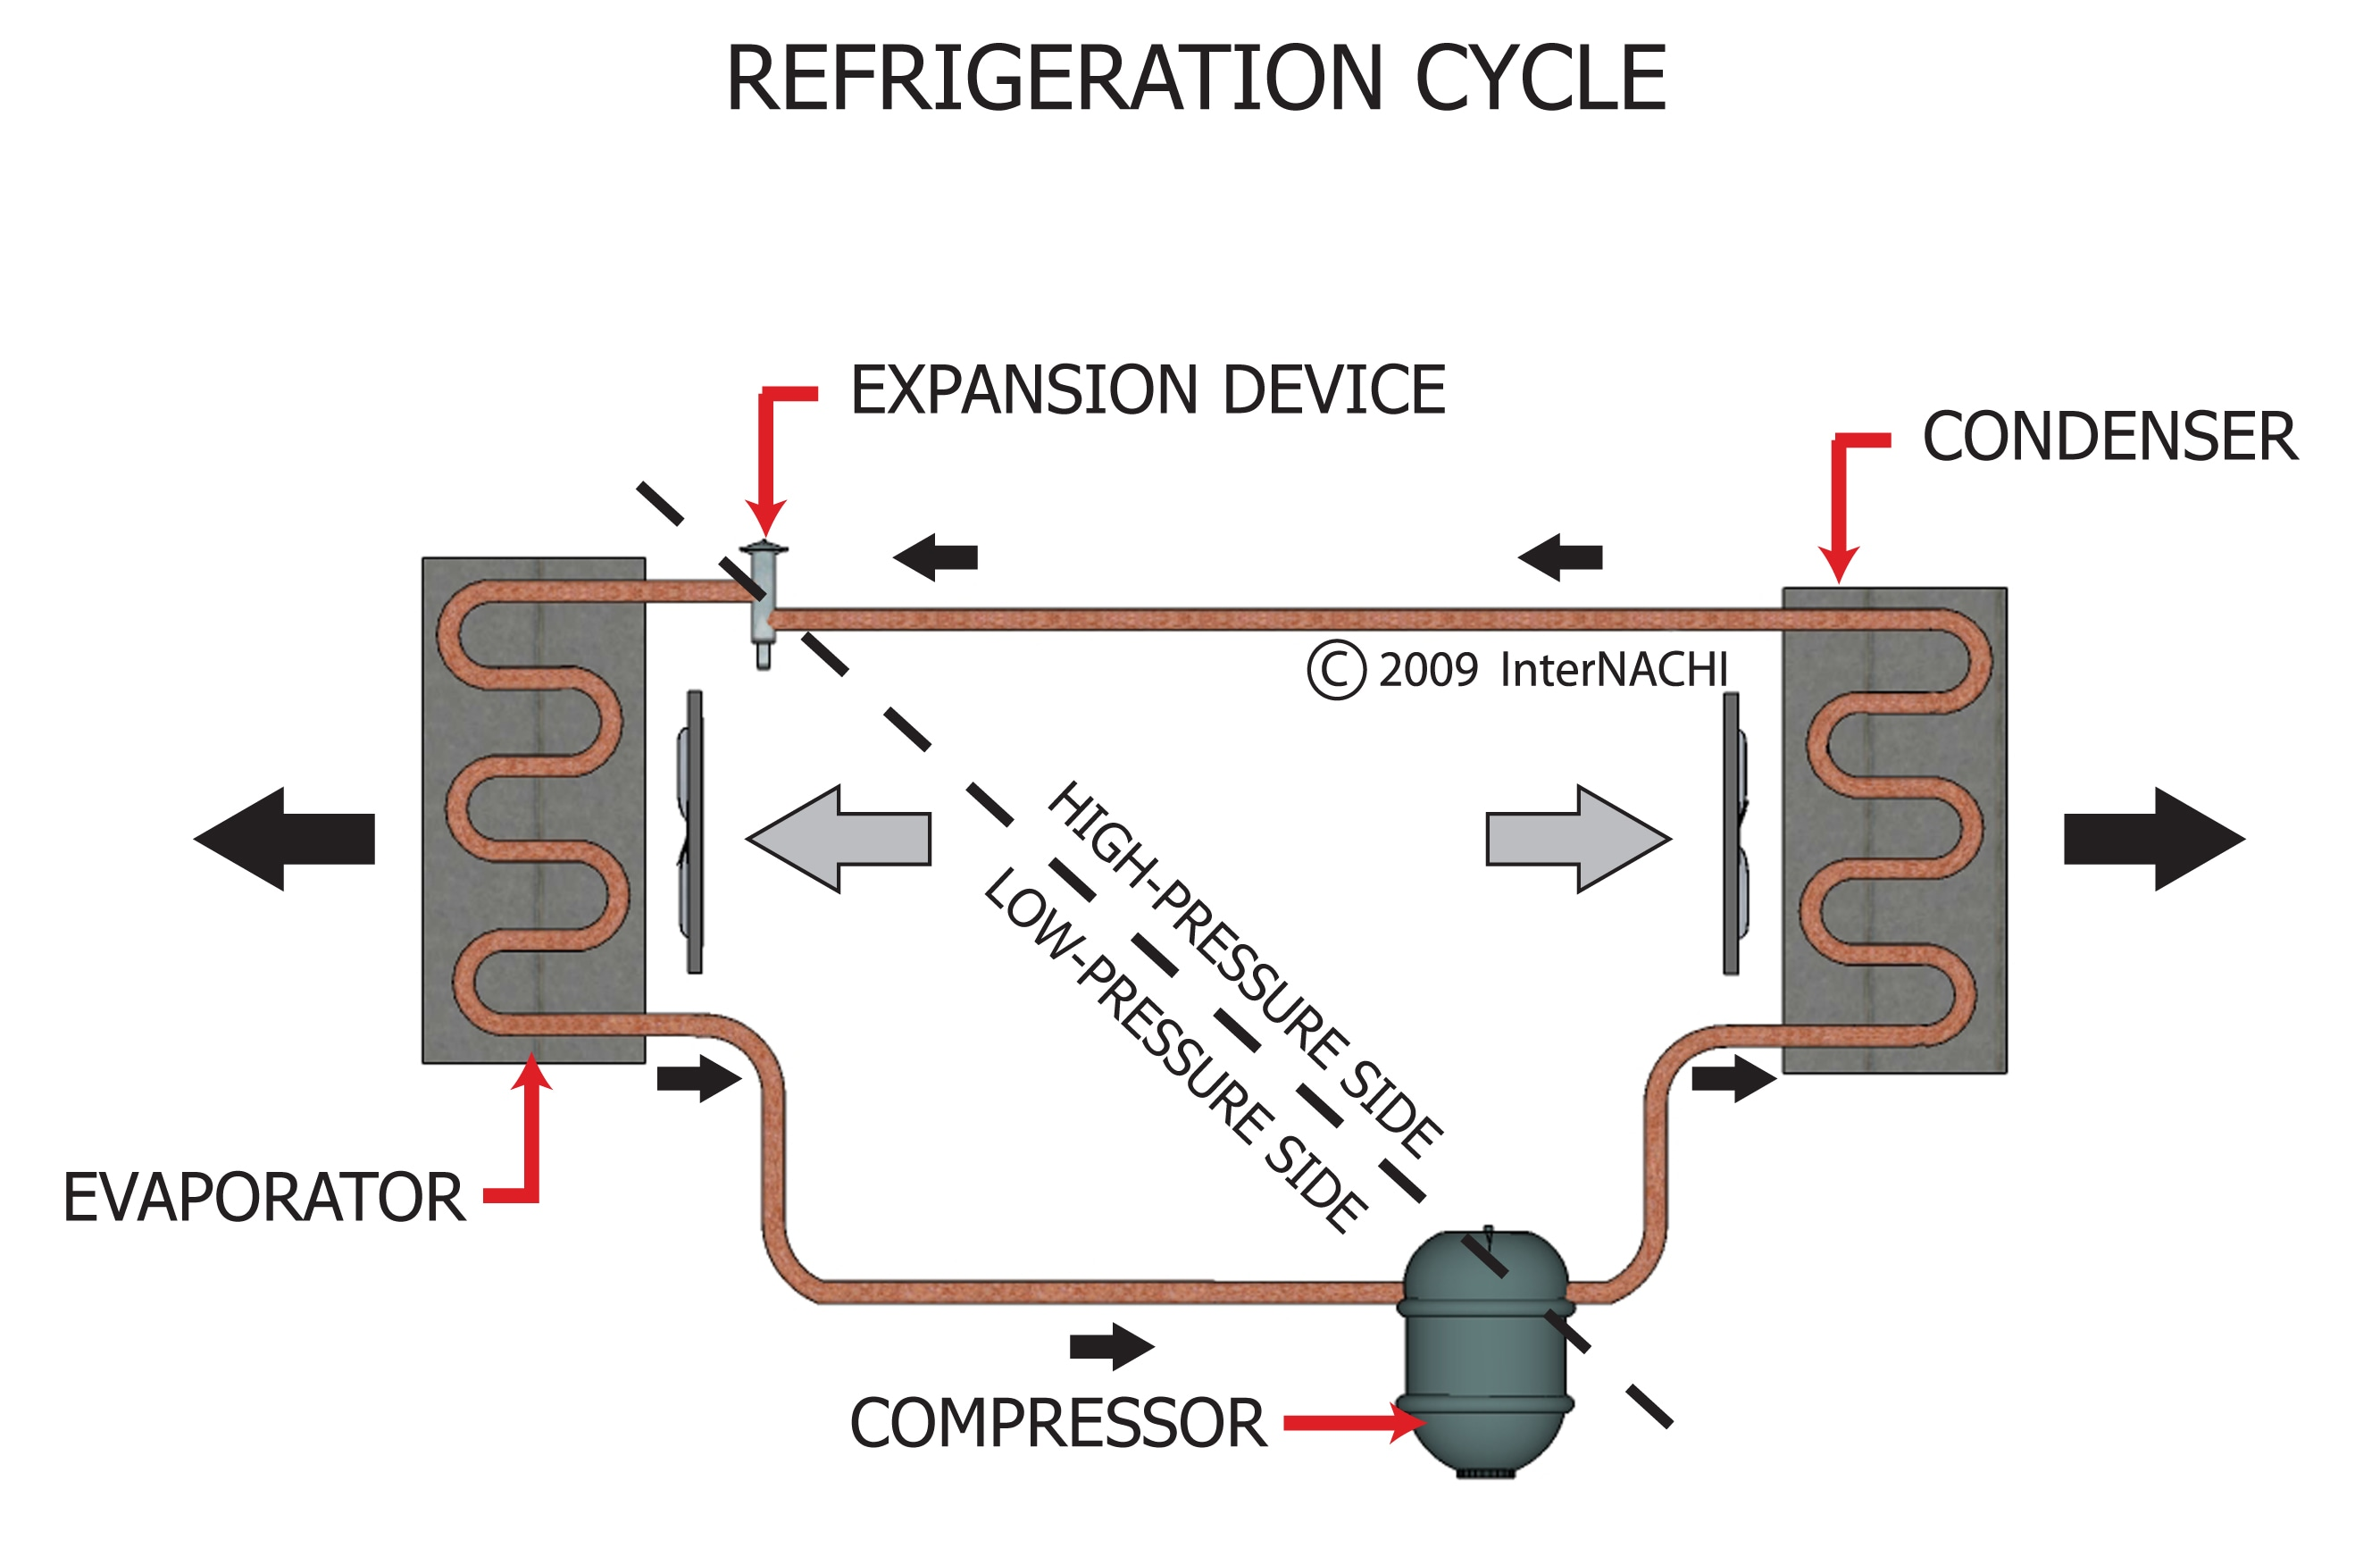 Refrigeration cycle.